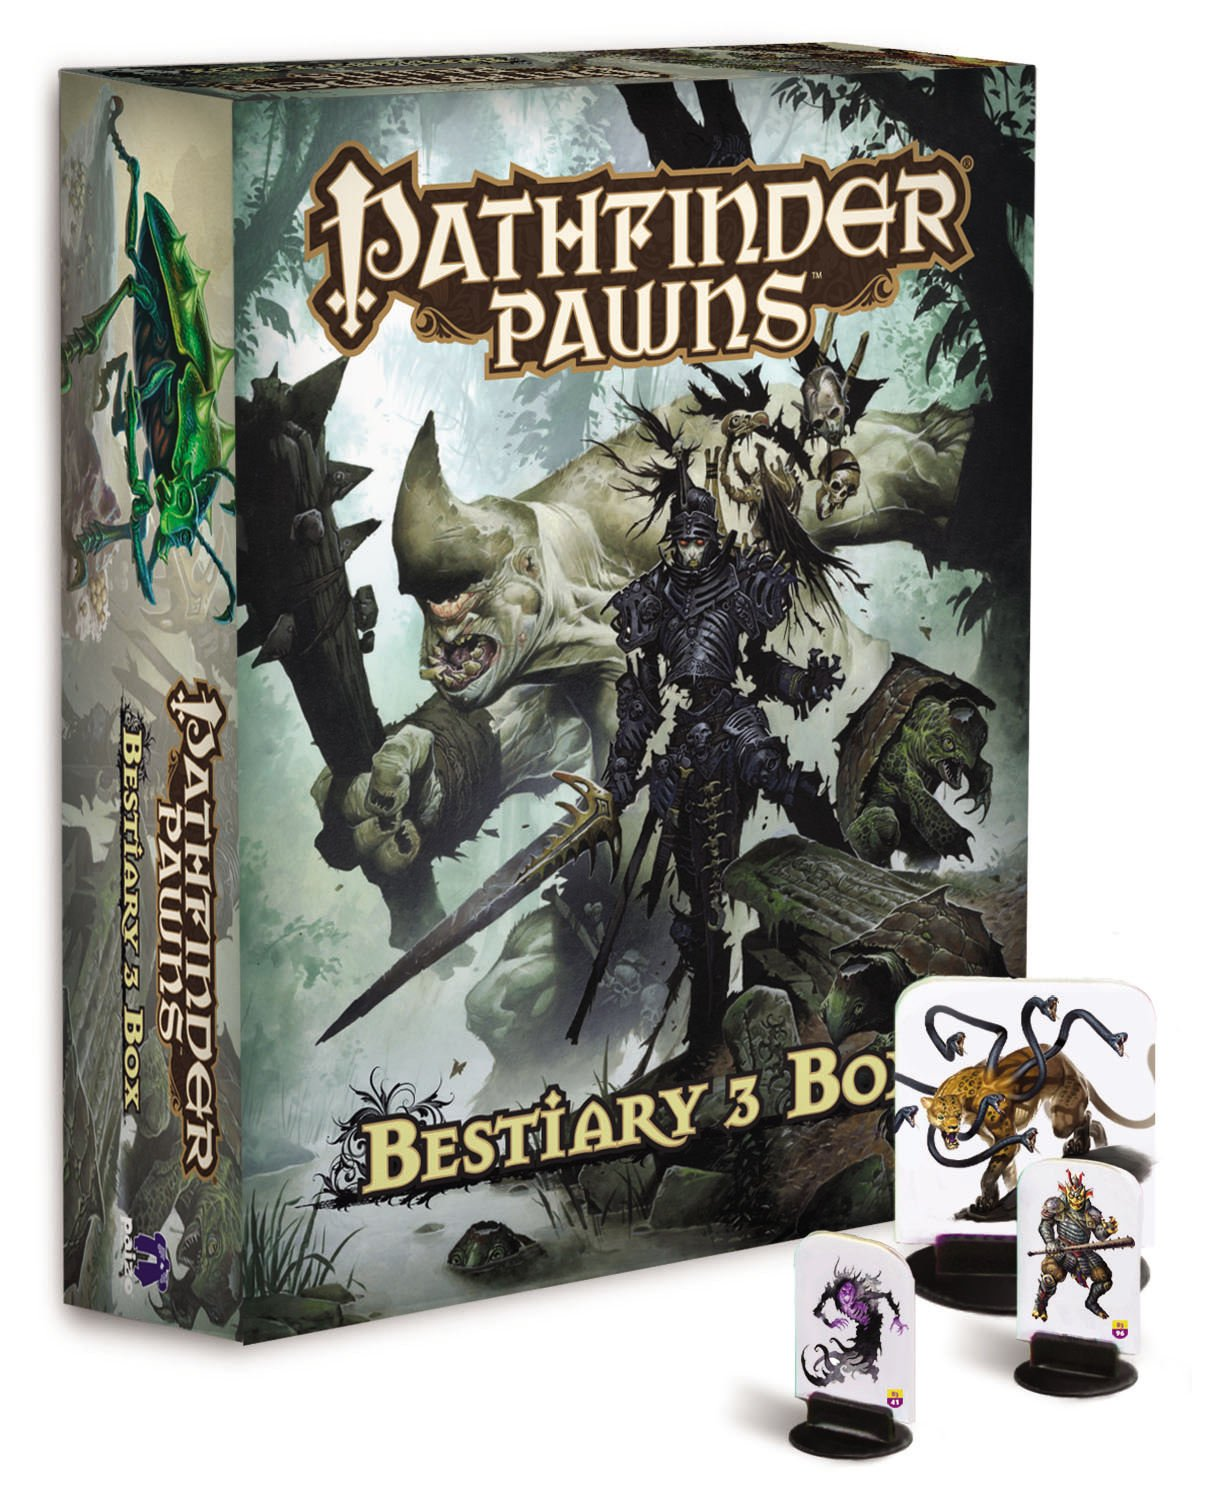 Pdf Science Fiction Pathfinder Pawns: Bestiary 3 Box